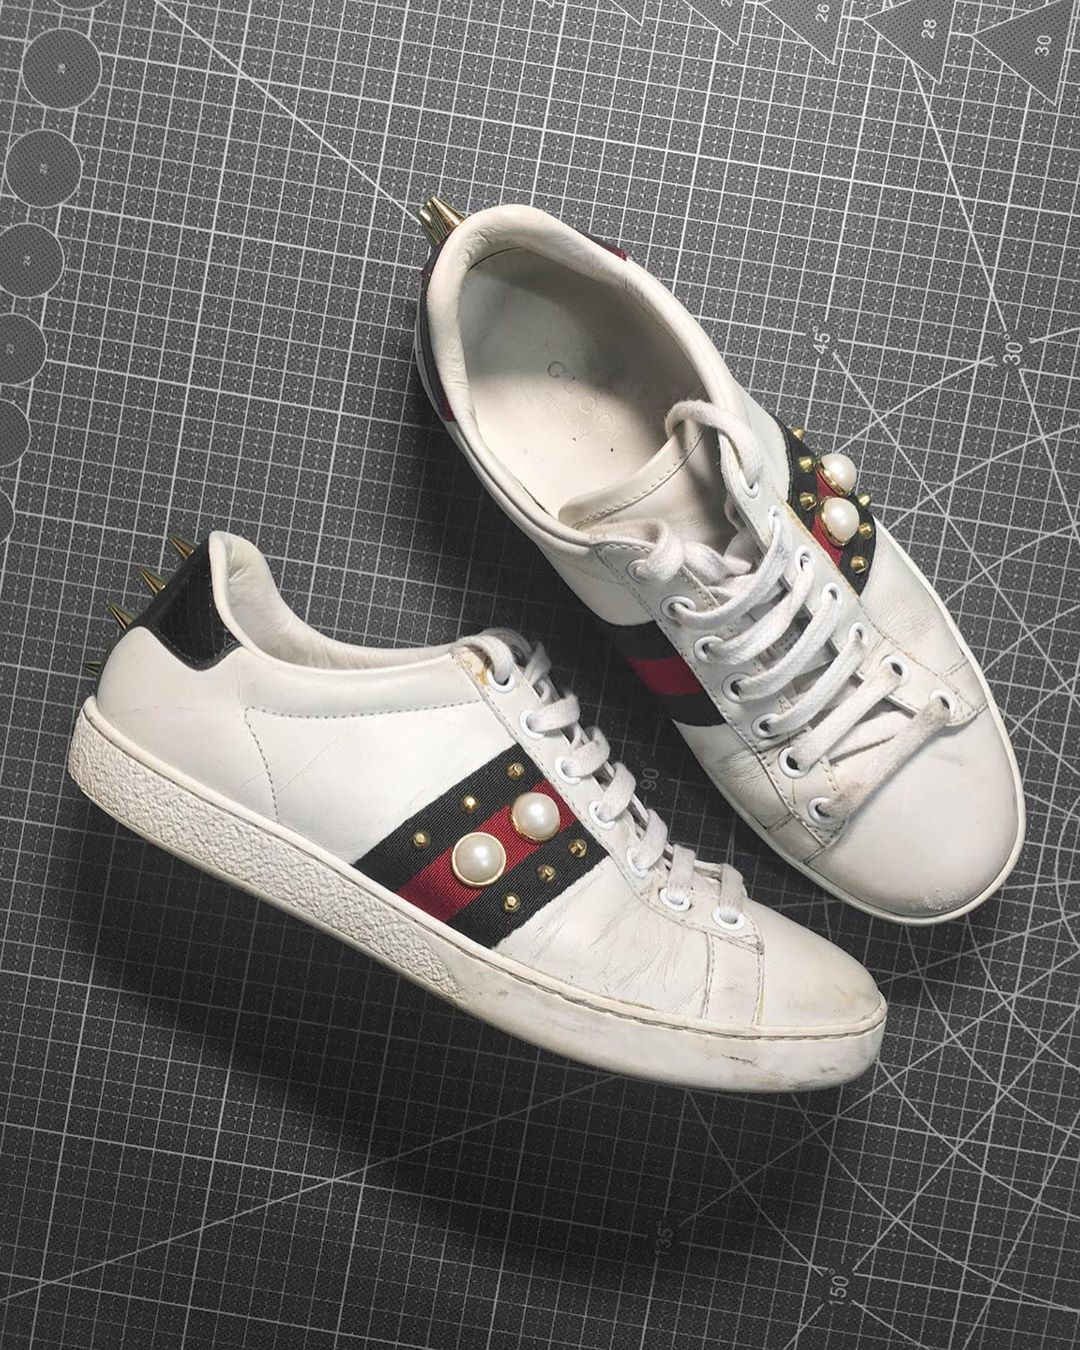 Custom Sneaker By mskdstudio in 2020 Gucci ace sneakers